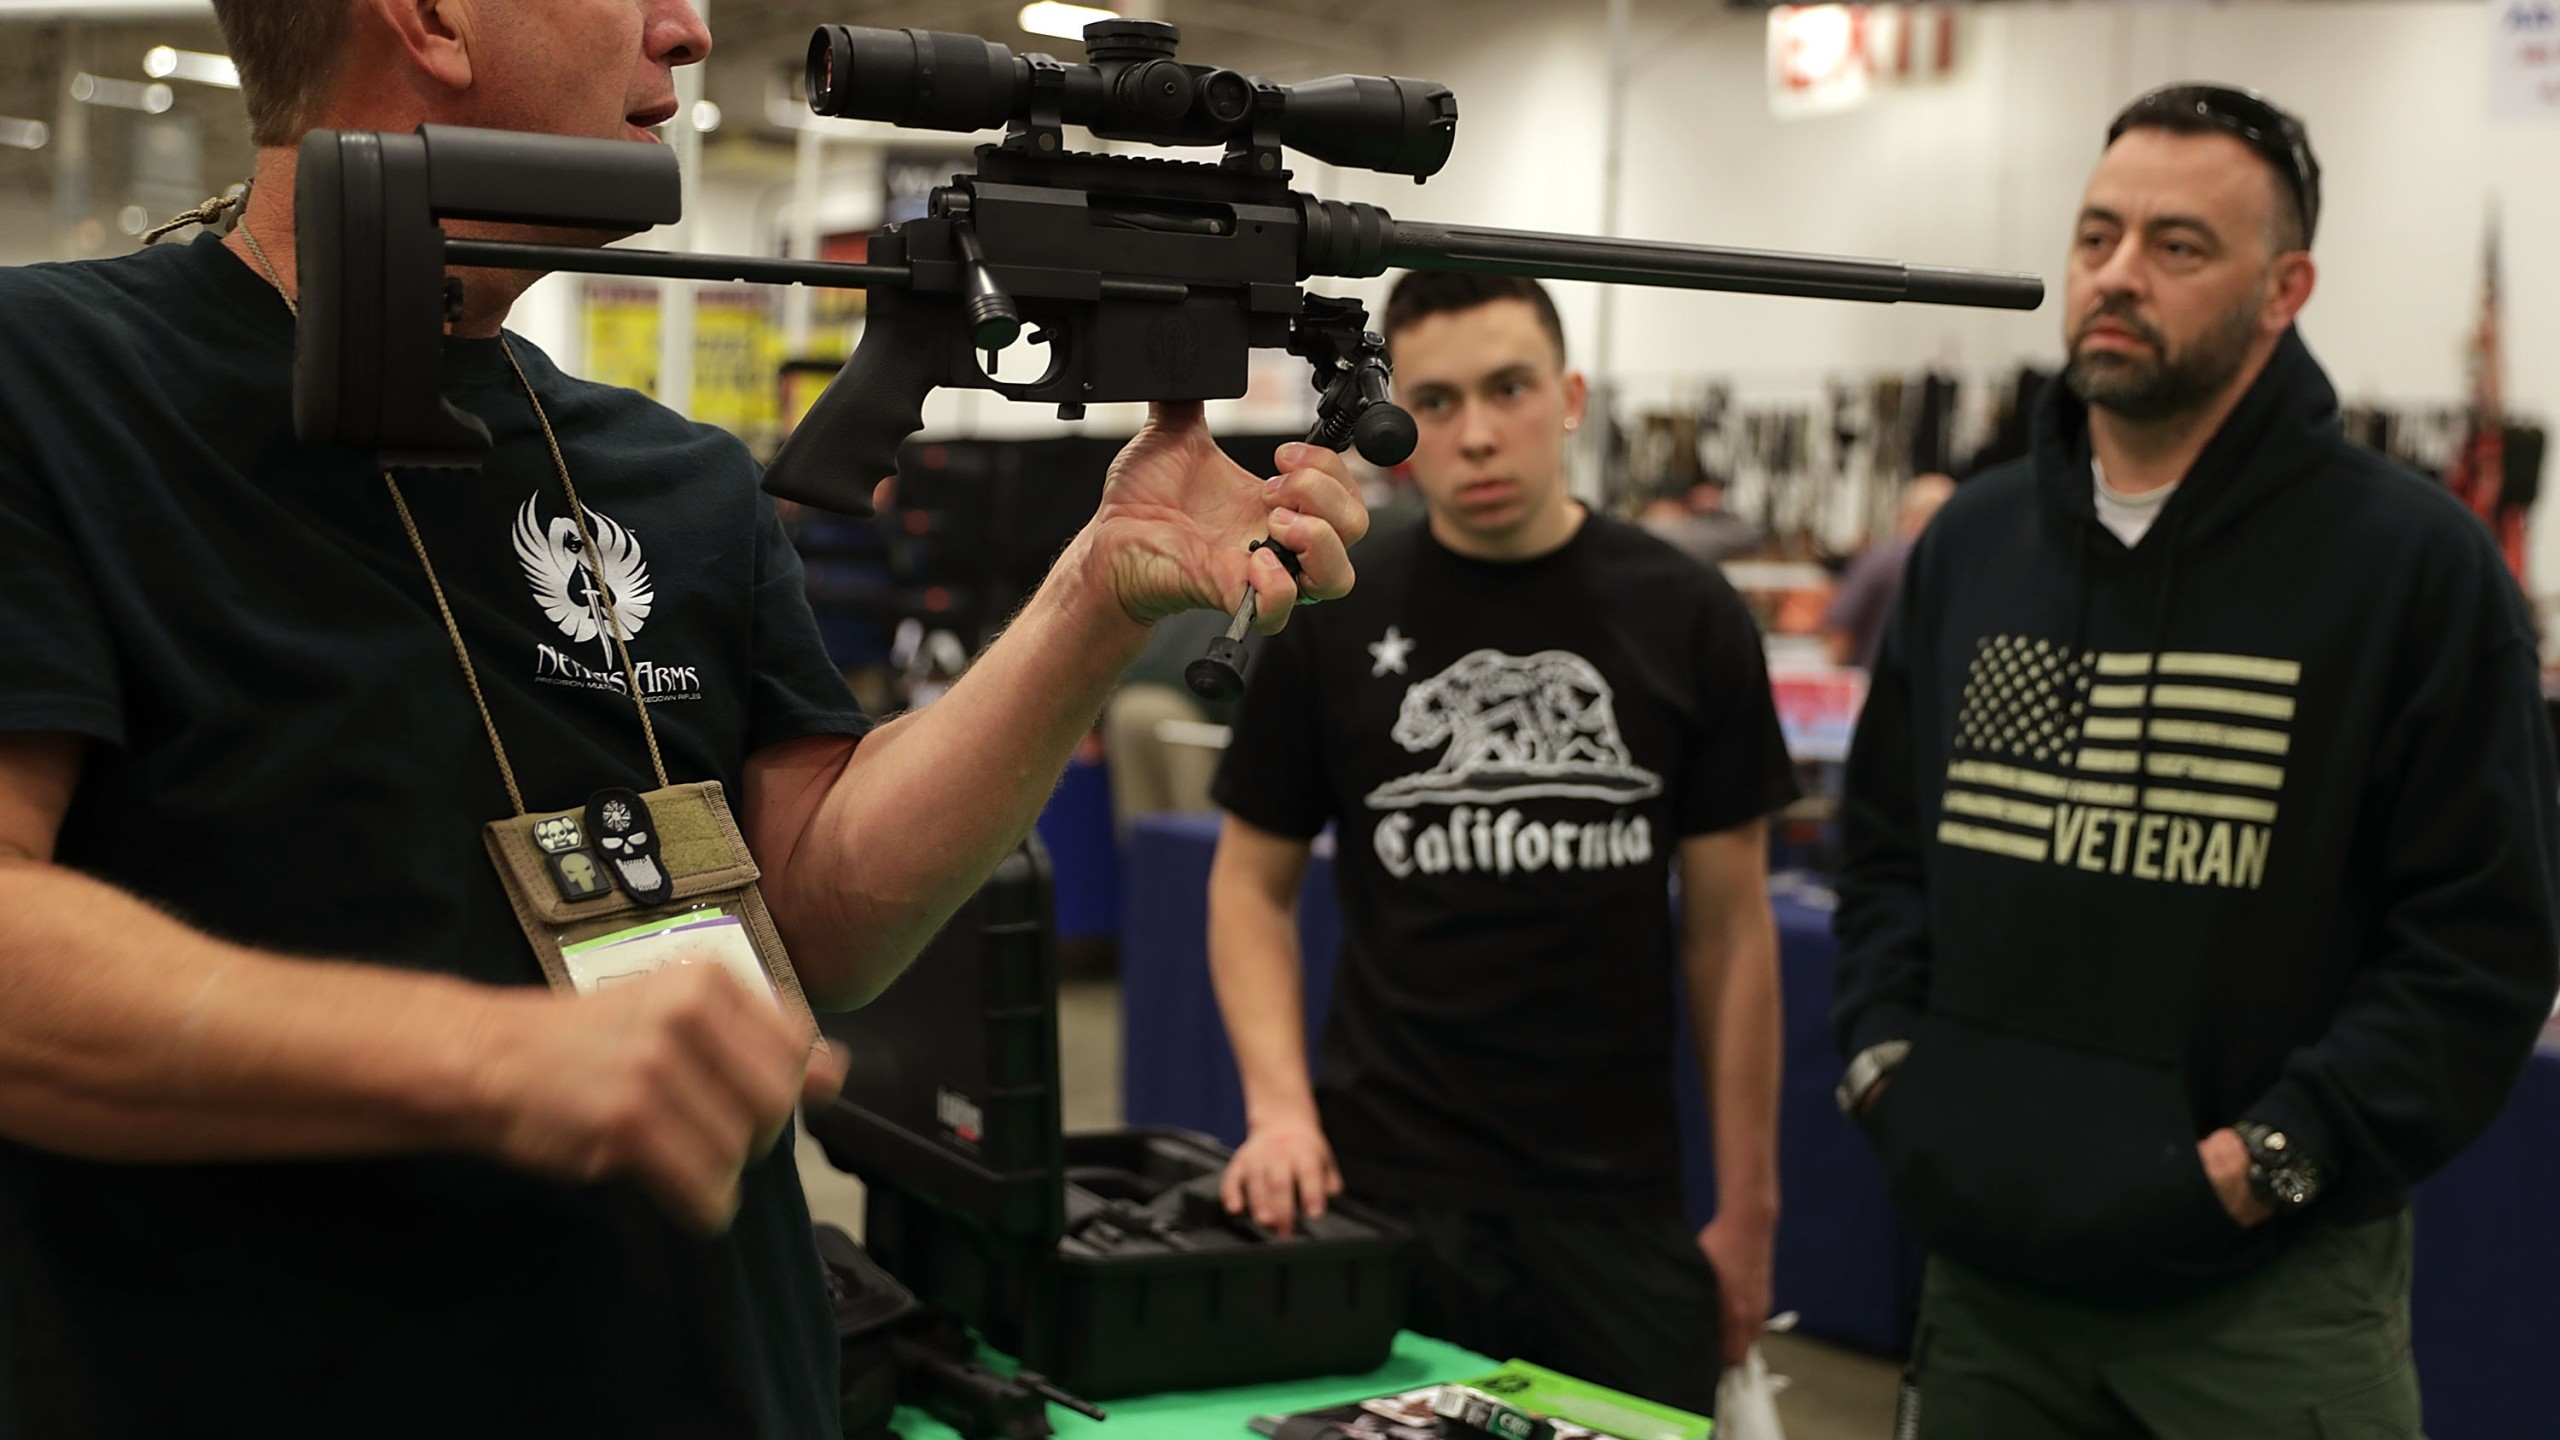 A gun seller demonstrates a firearm to potential buyers during the Nation's Gun Show on Nov. 18, 2016, at Dulles Expo Center in Chantilly, Virg. (Credit: Alex Wong/Getty Images)